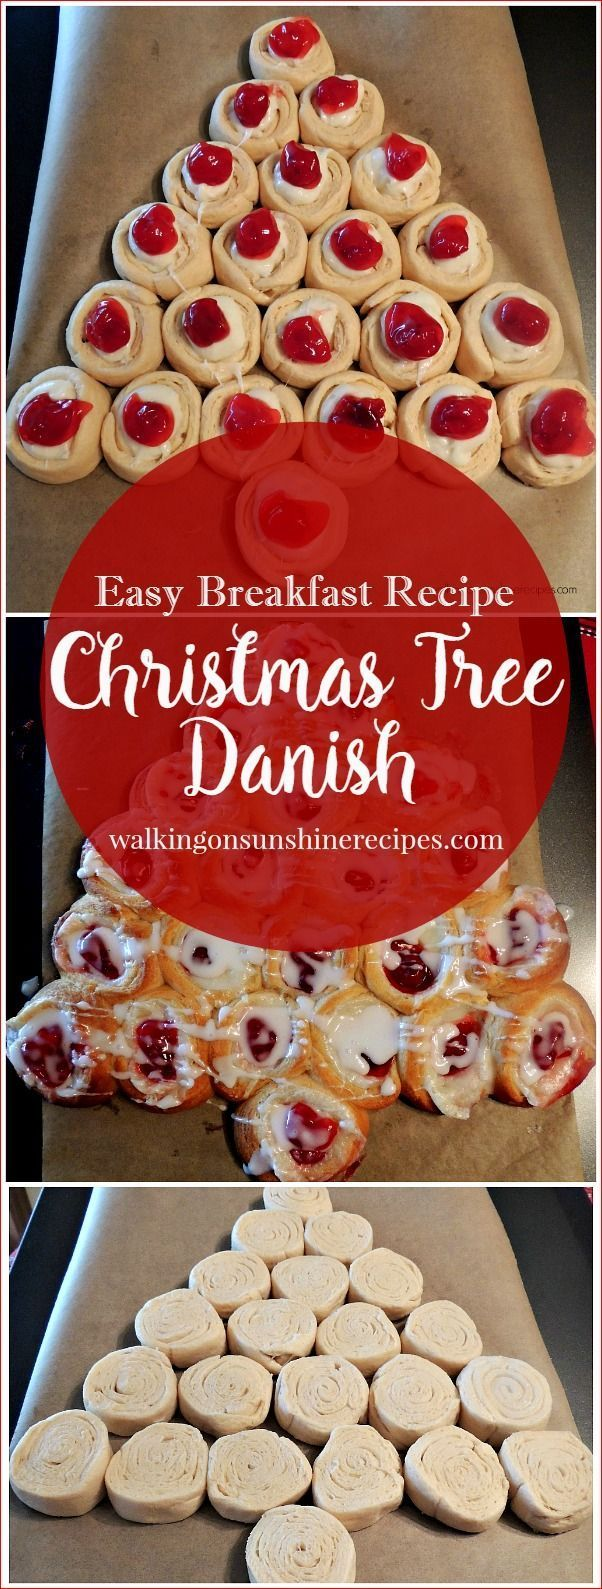 The 74 best danish christmas images on pinterest danish christmas christmas tree cream cheese danish easy last minute breakfast recipe from walking on sunshine recipes fun recipes christmas forumfinder Image collections